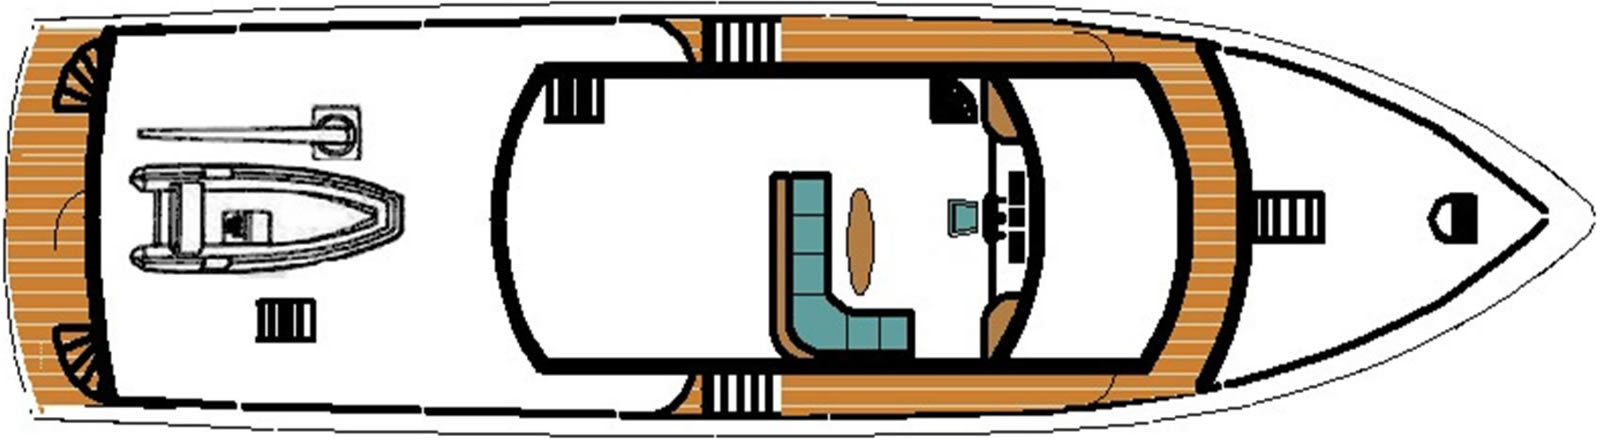 Ruby Expedition 80 House Forward Flybridge Deck